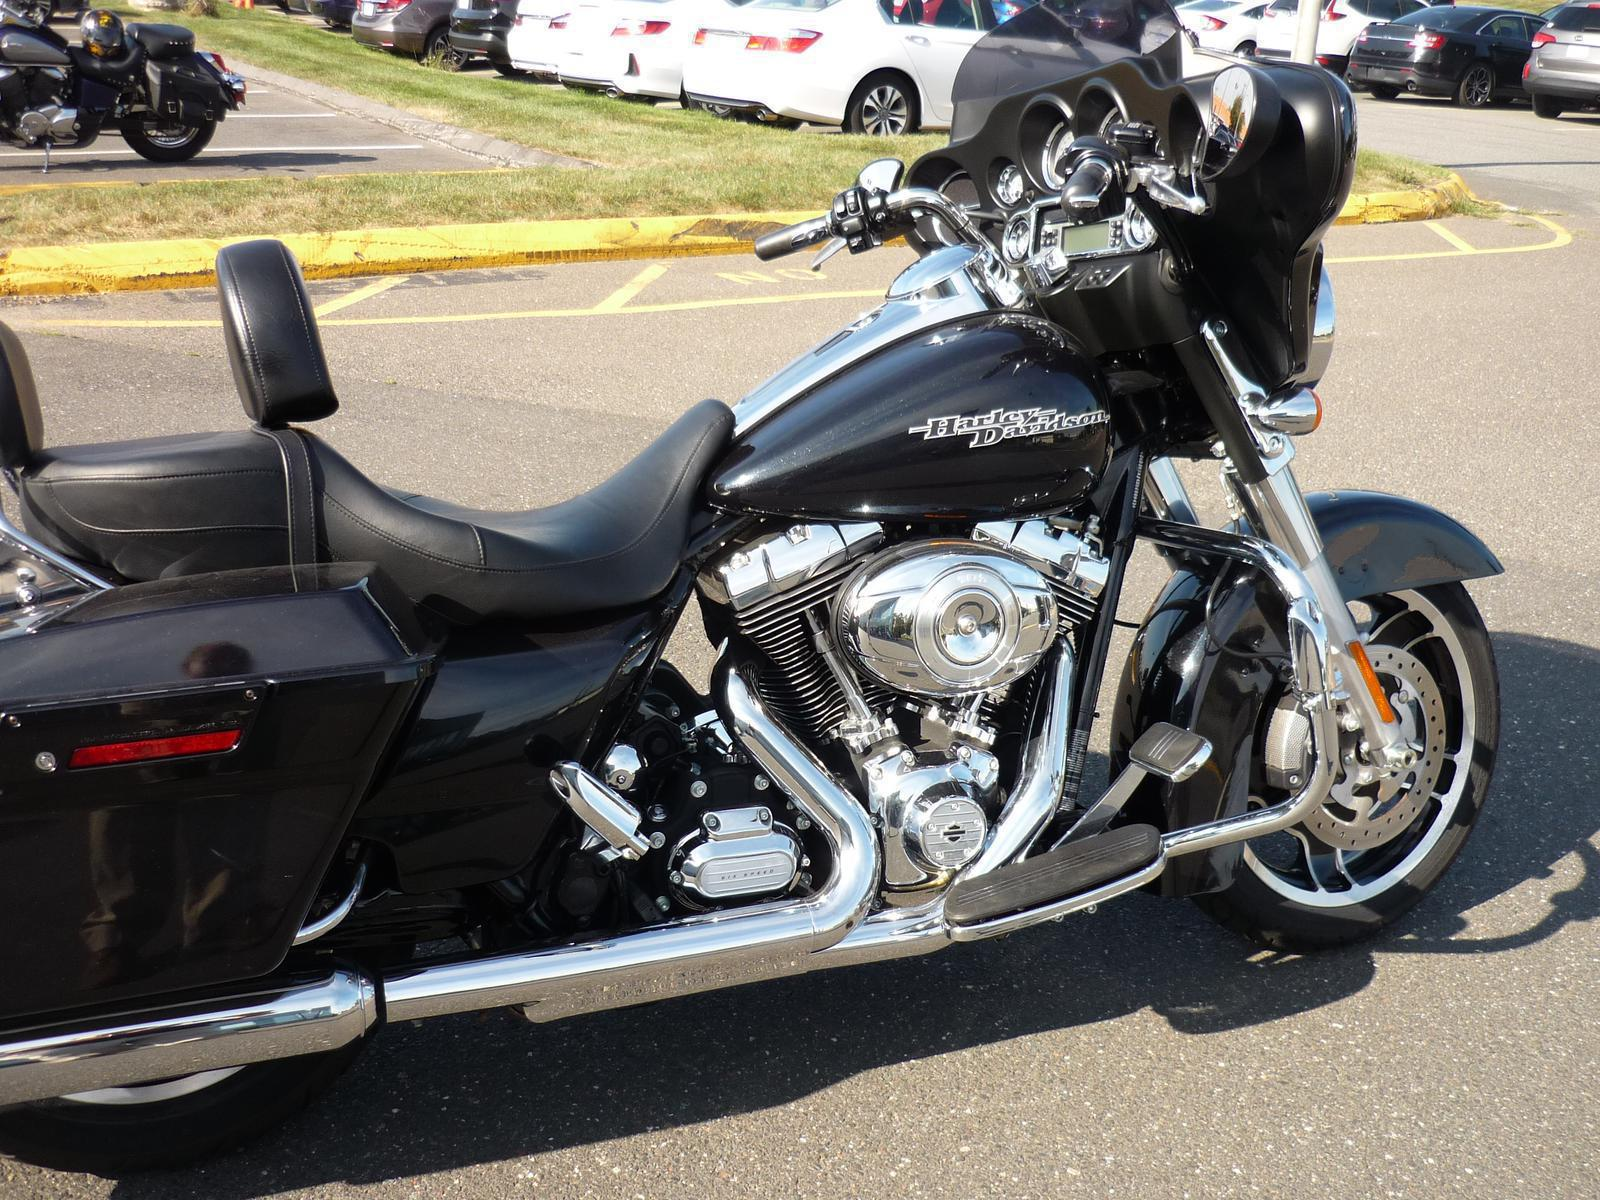 2013 Harley-Davidson® FLHX Street Glide® for sale in Manchester,